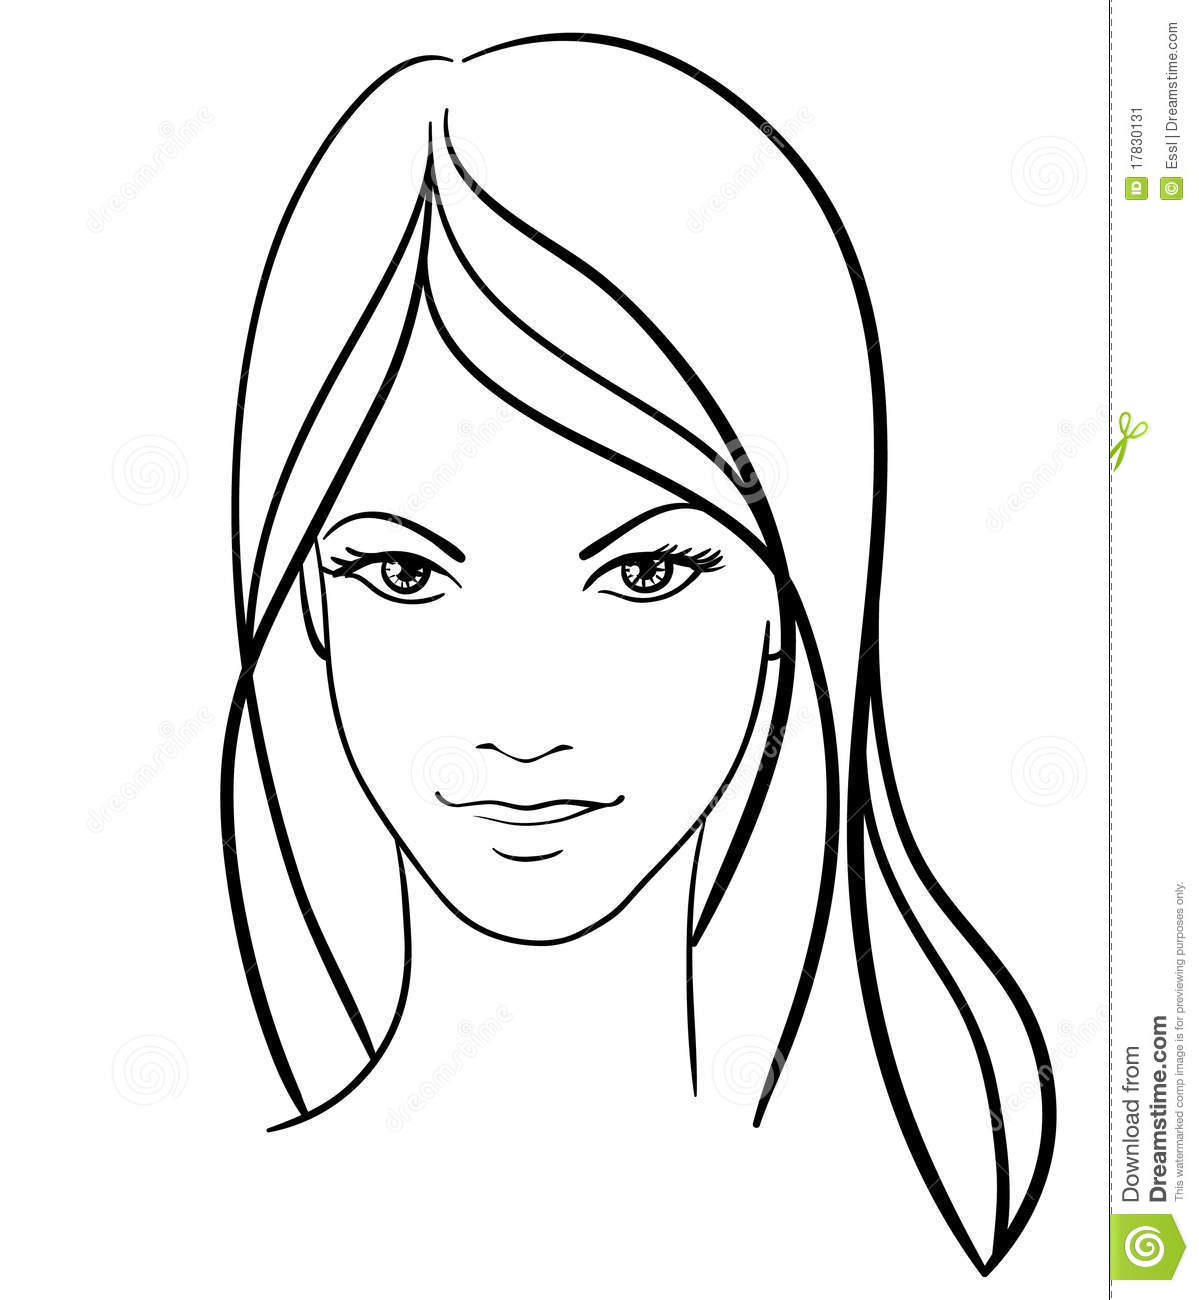 Line Drawing Of Child S Face : Beauty girl face icon stock vector illustration of